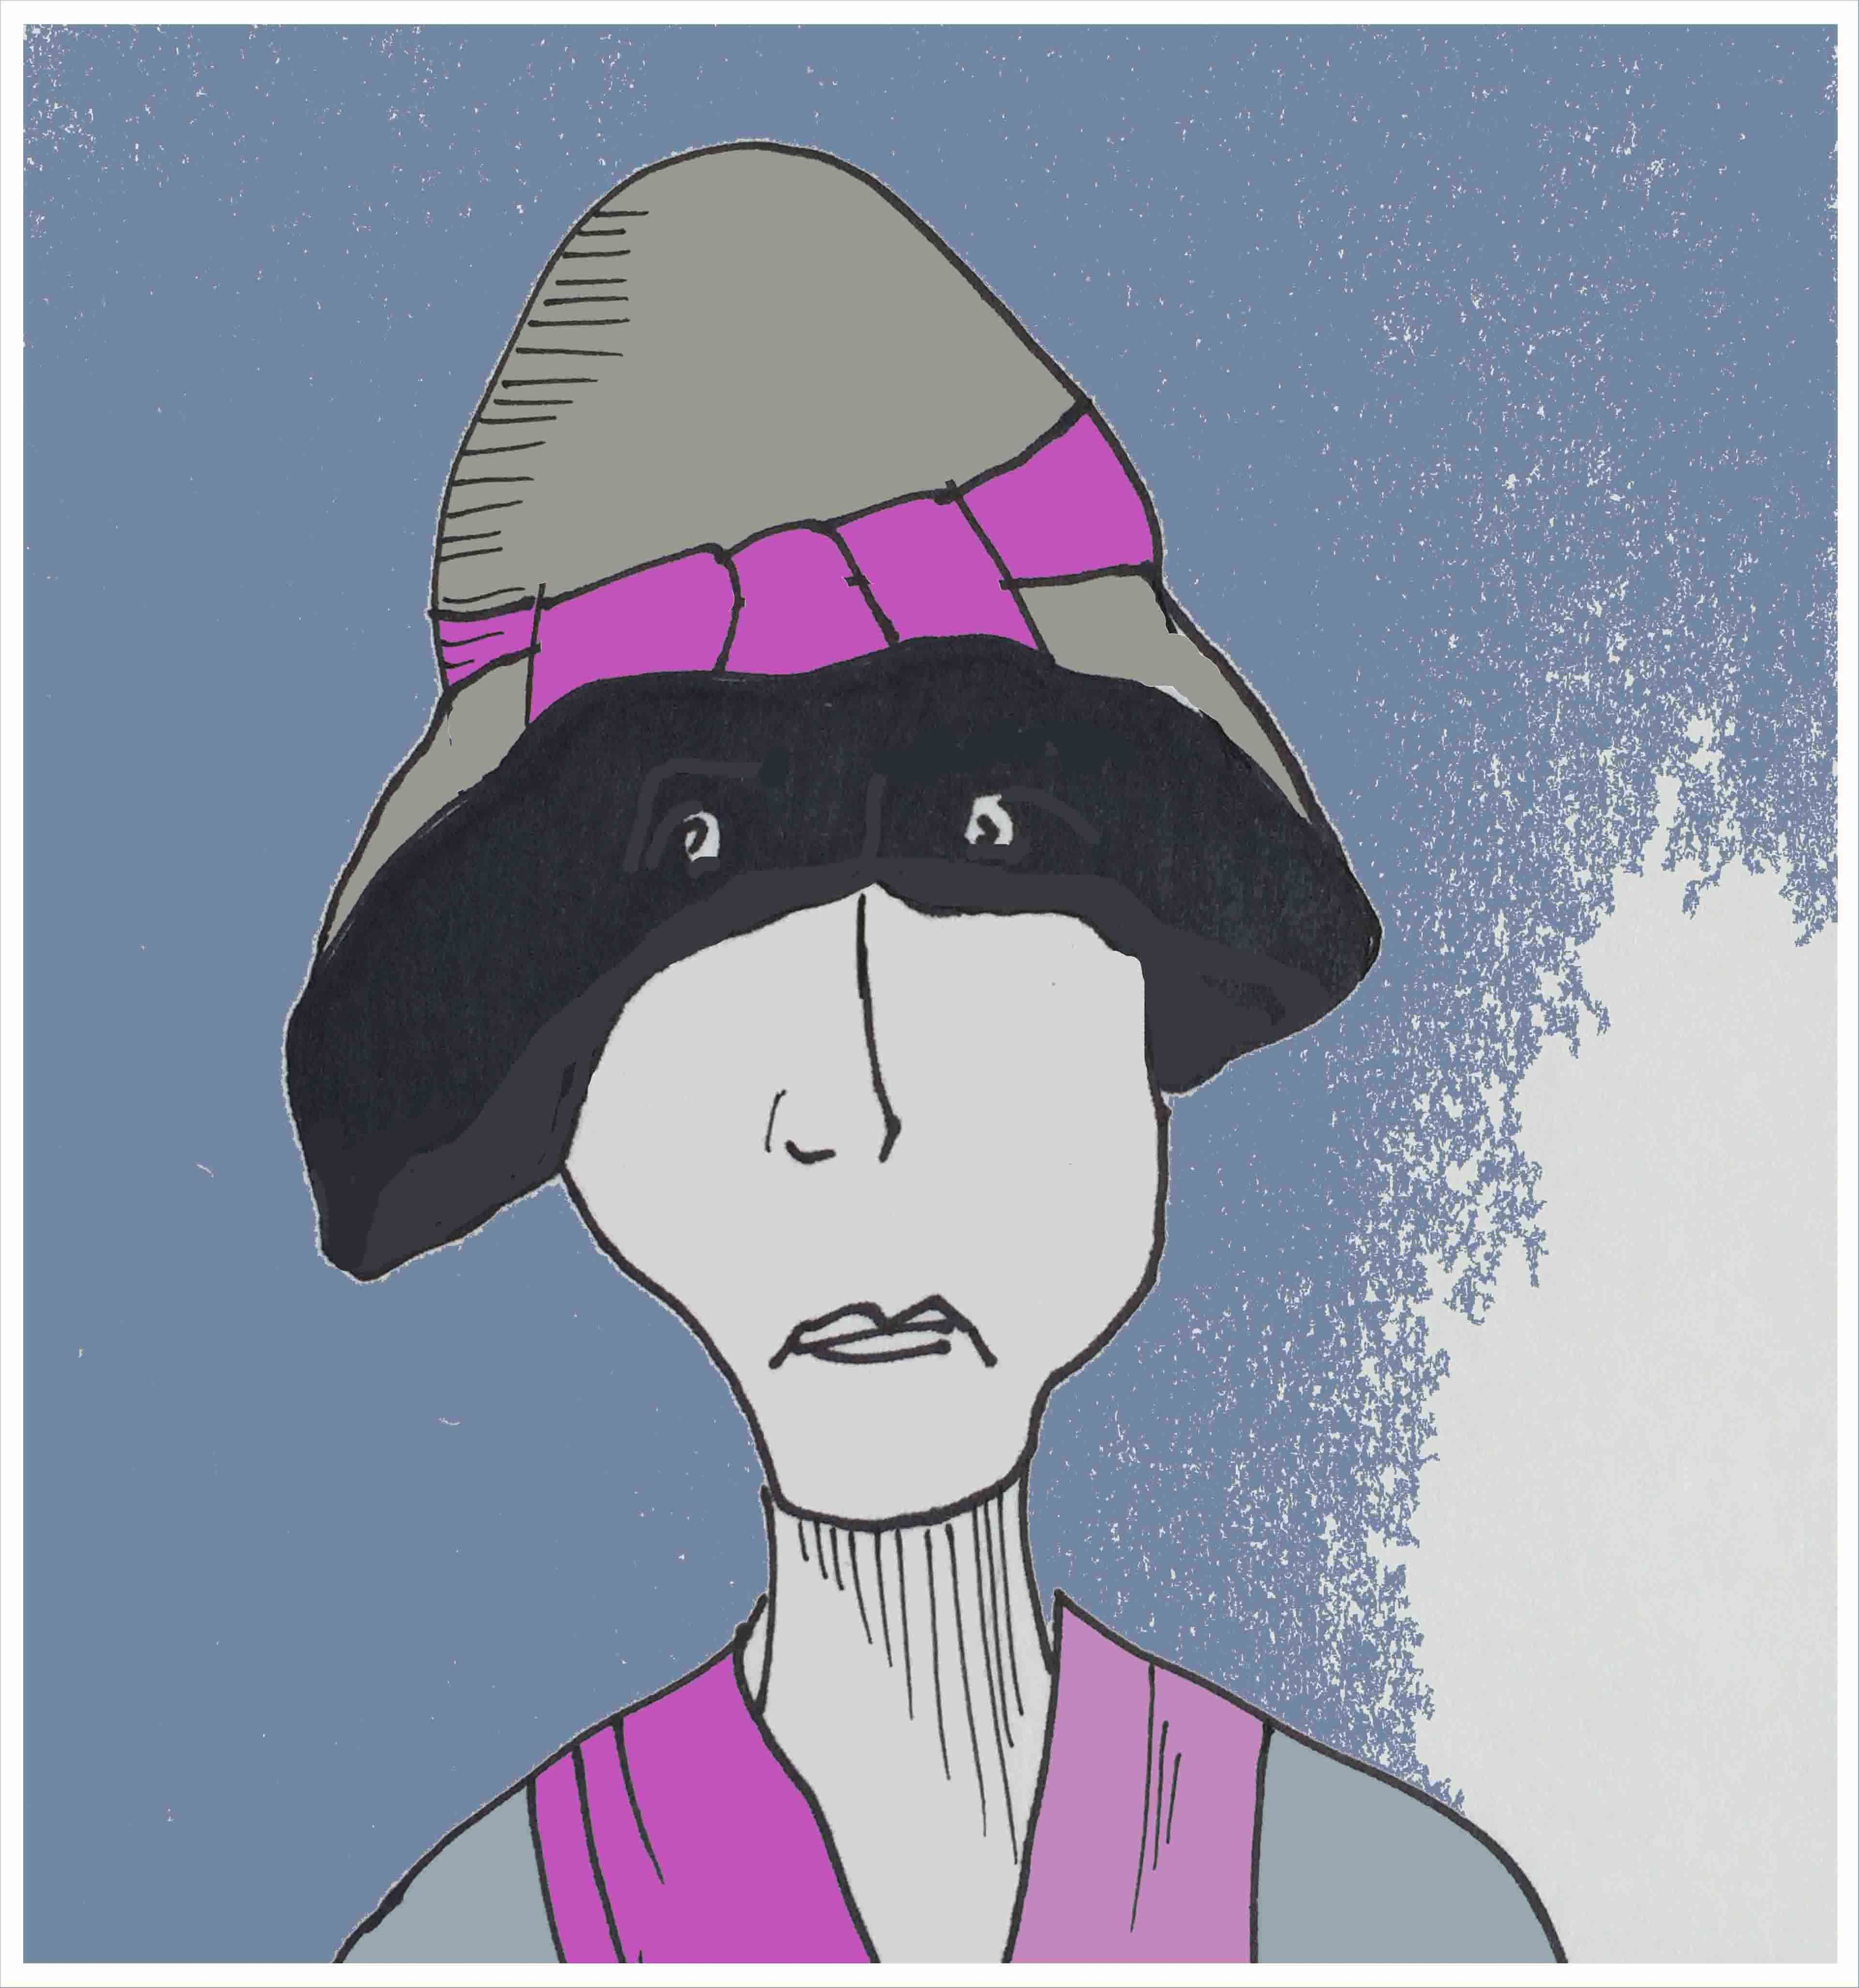 ART EVERY DAY NUMBER 68 / DRAWING / ILLUSTRATION / shade Art every day number 68 shows a woman who sat in a sunny park, almost 80 years ago.  Her eyes are shaded by a 1930s 'cloche style' hat.  One small piece of art & illustration a day / Janet Bright  #drawing #hat #shade